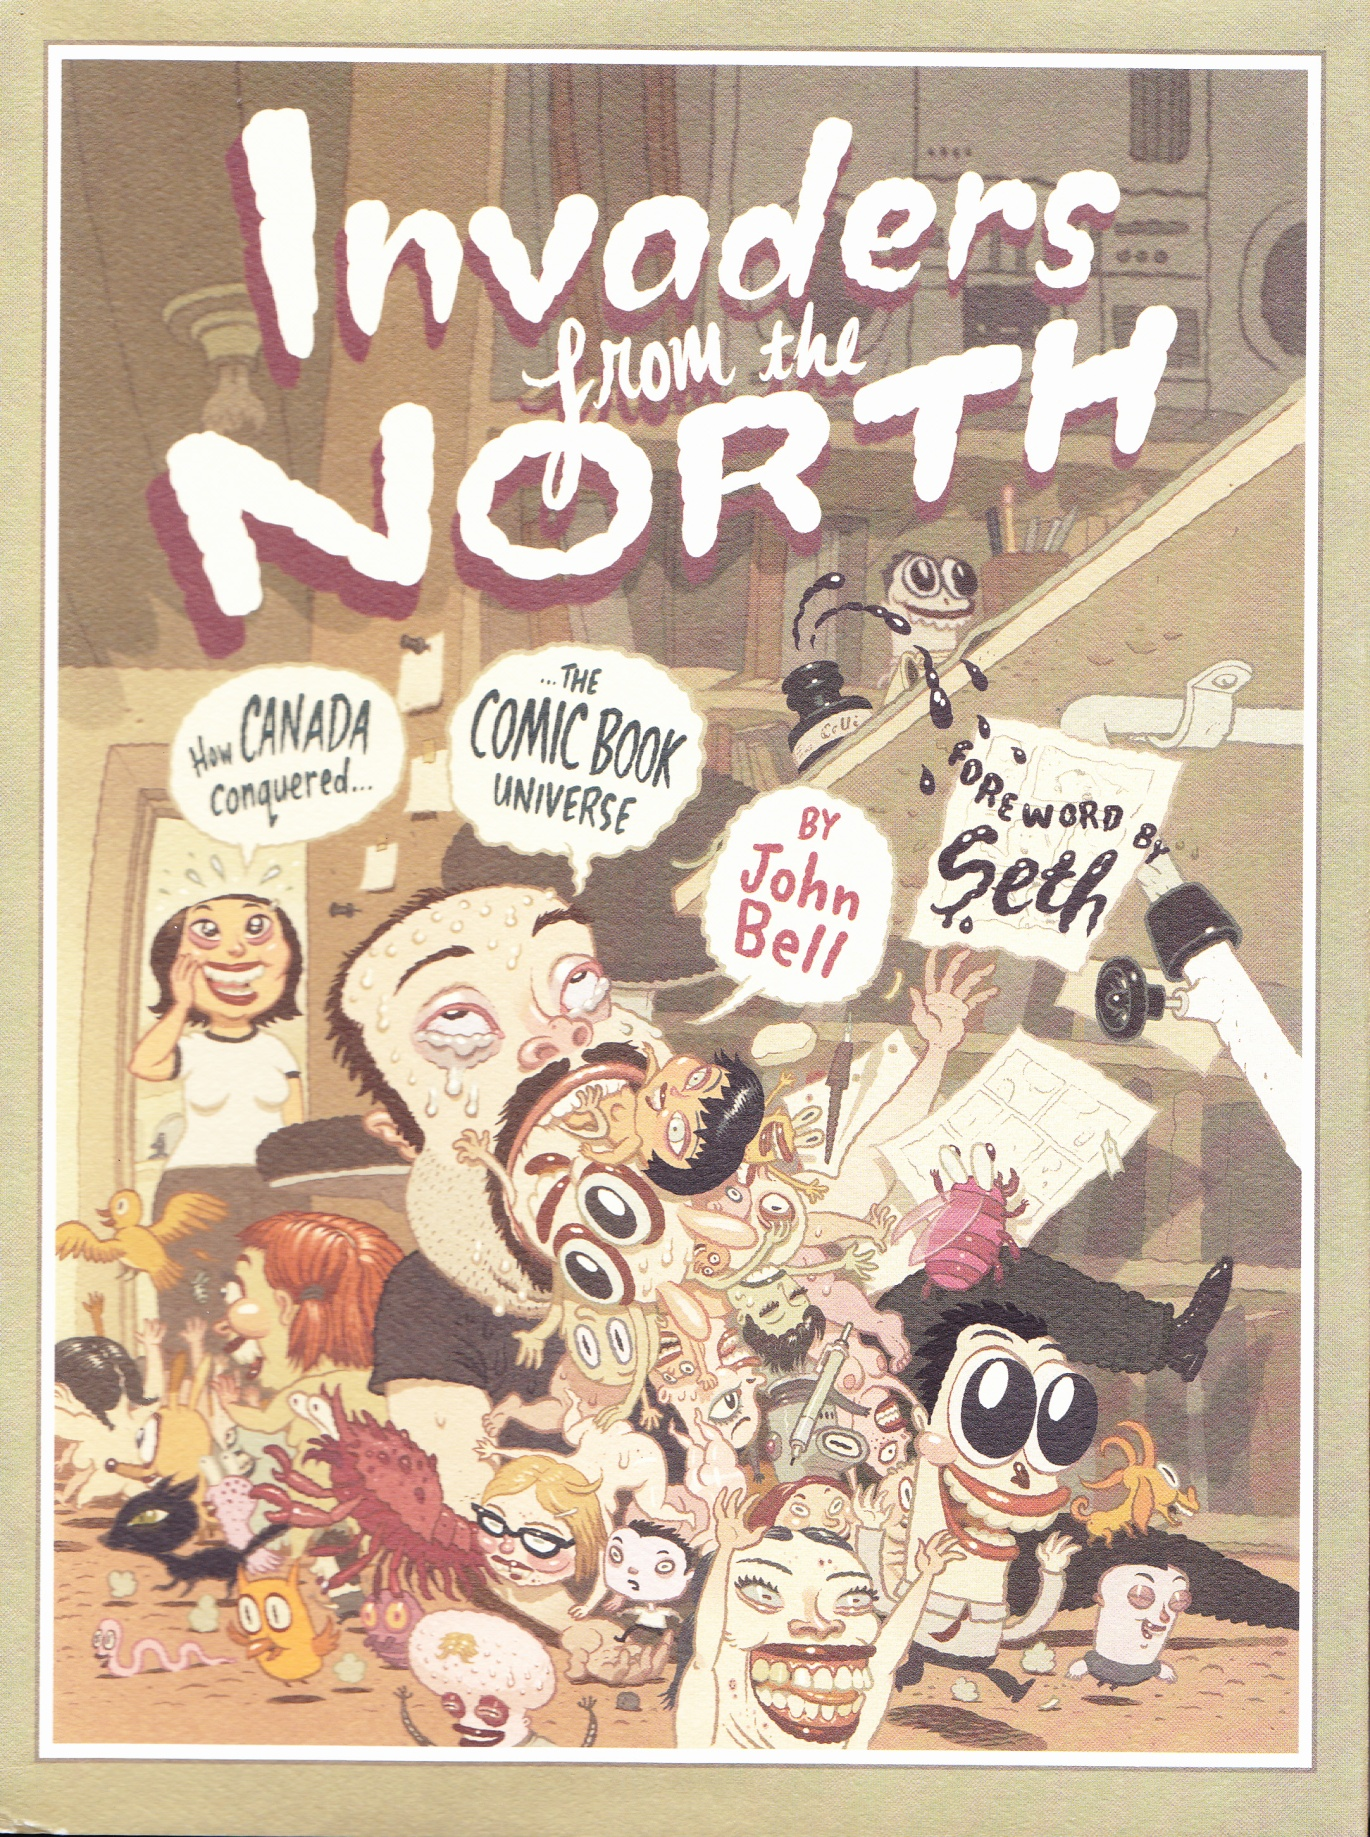 C:\Users\Robert\Documents\CARTOONING ILLUSTRATION ANIMATION\IMAGE BY CARTOONIST\C\COOPER Dave, Invaders from the North, 2006, dj.jpg